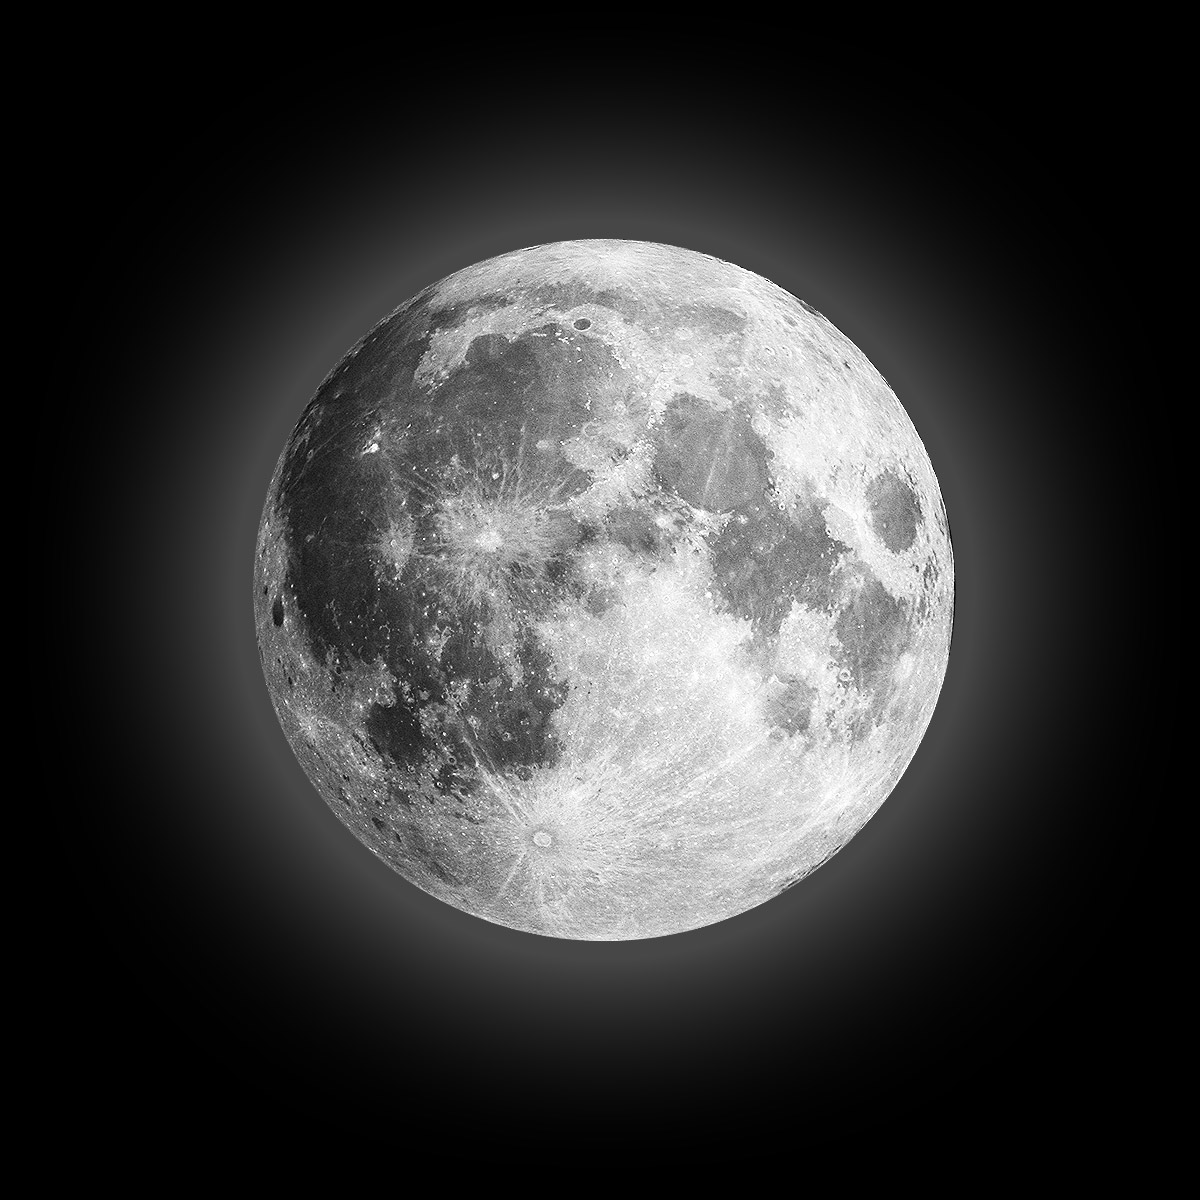 Full Moon in March 2019, Full Moon in Libra 0°08', March 21